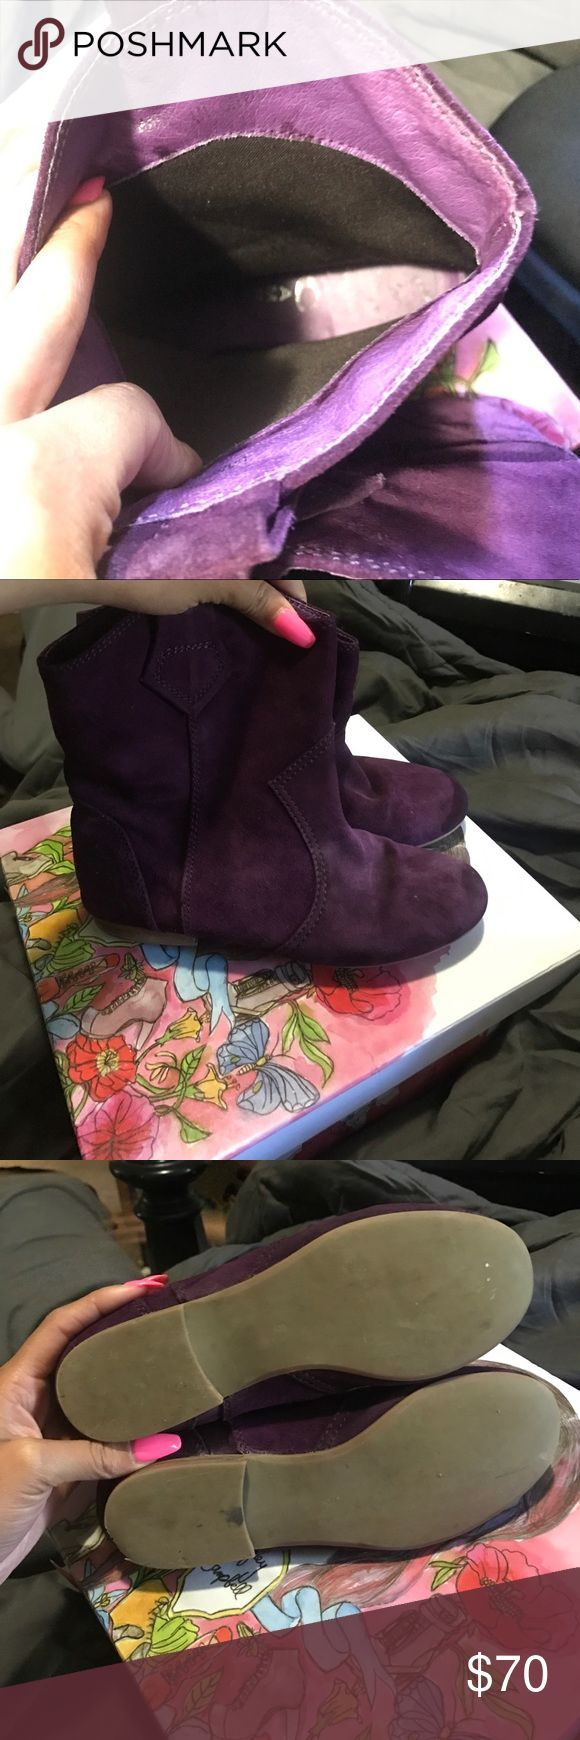 Purple Jeffrey Campbell cowboy boots Purple Jeffrey Campbell boots gently used. willing to except offers Jeffrey Campbell Shoes Ankle Boots & Booties